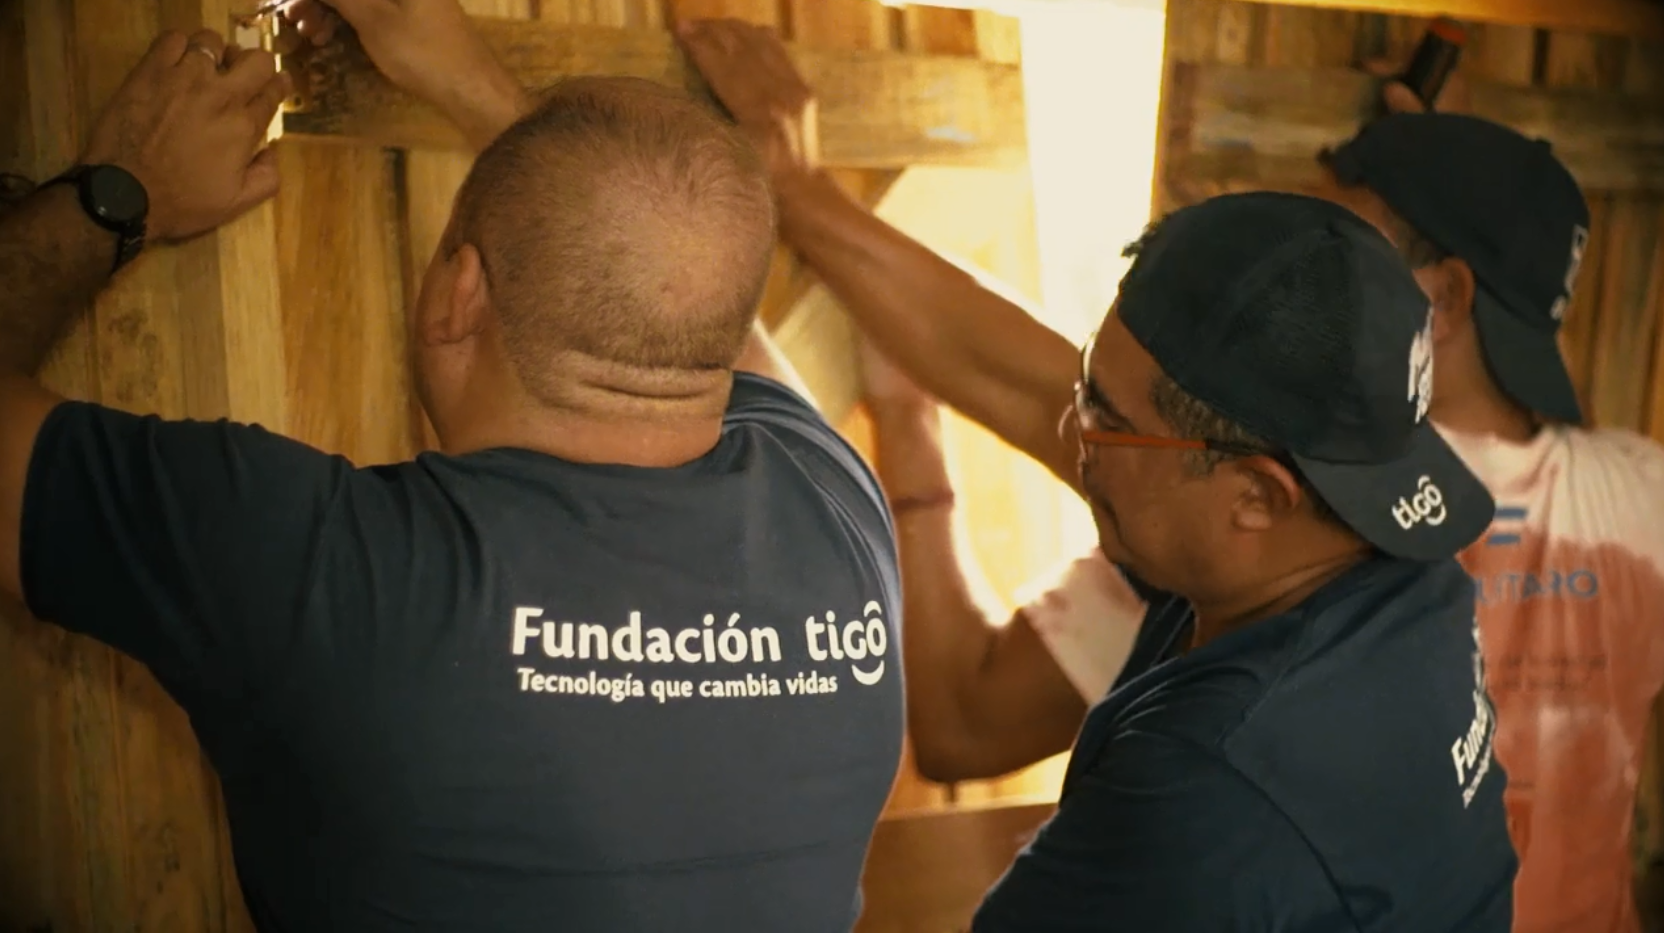 Millicom's Volunteer Days programme in action: Tigo Honduras employees dedicate their time to building and developing local communities